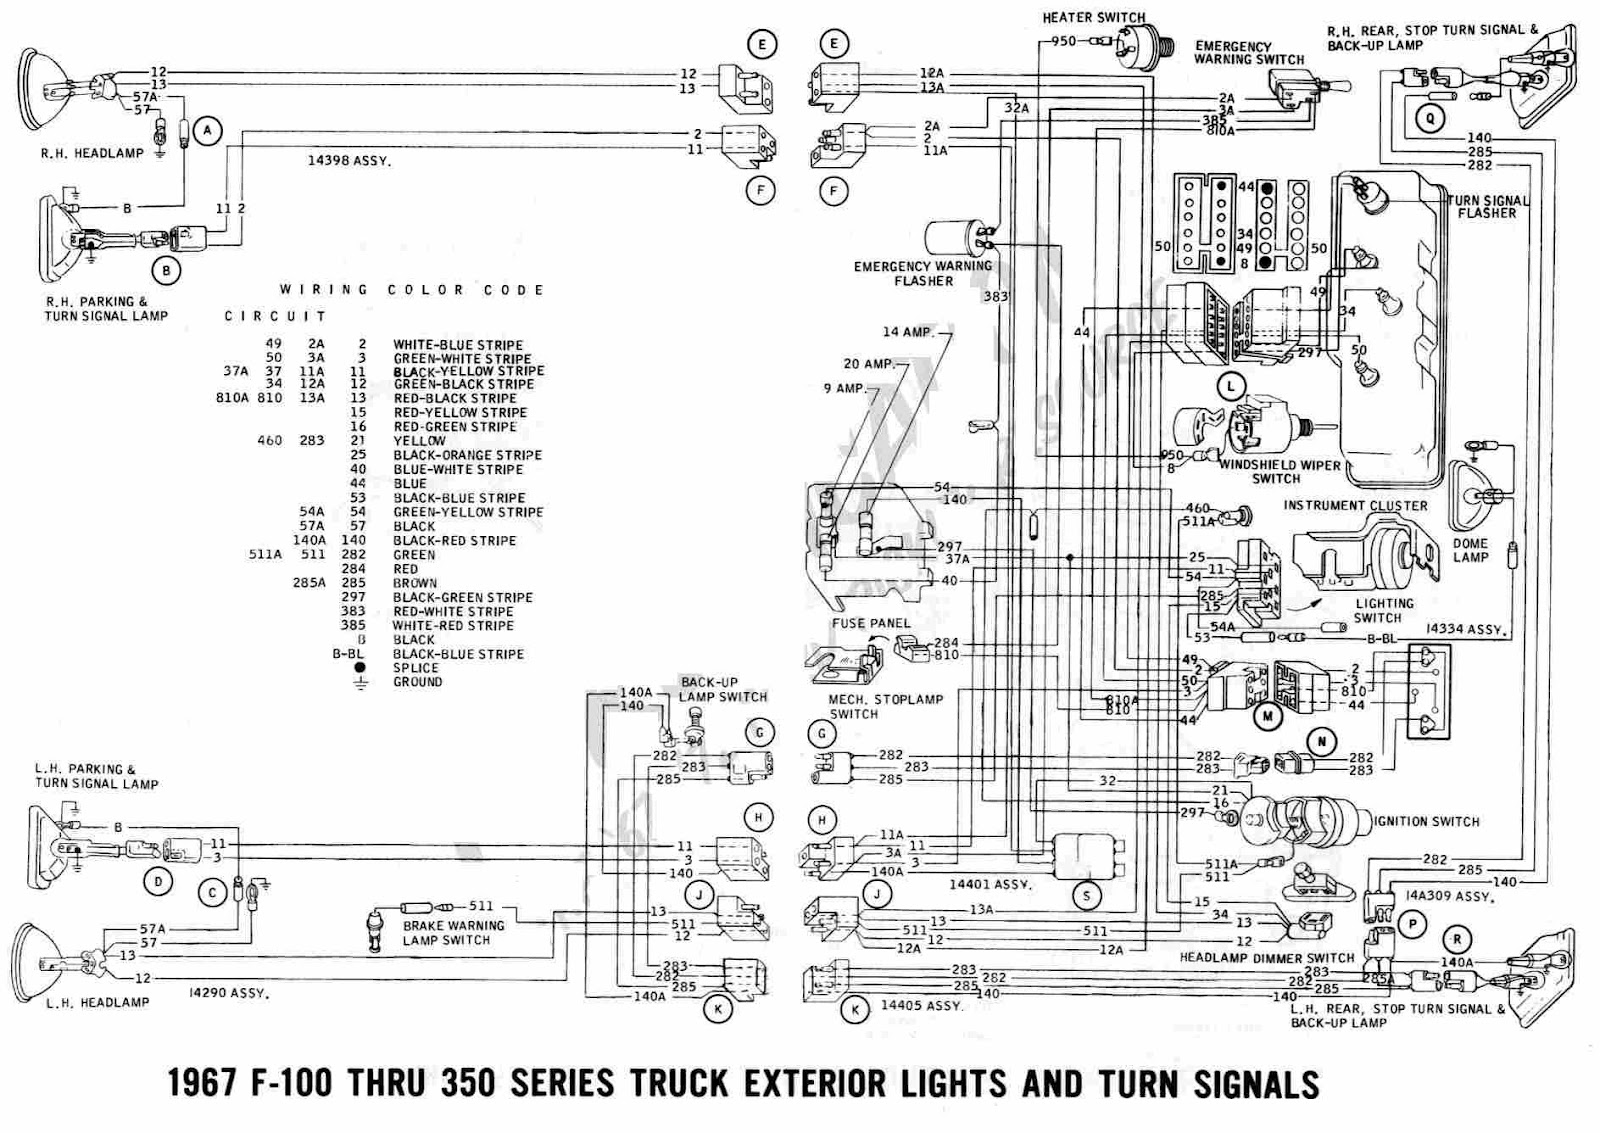 2000 ford f 350 turn signal wiring diagram jhLegkn ford f650 turn signal wiring diagram image details ford f650 wiring diagram at nearapp.co